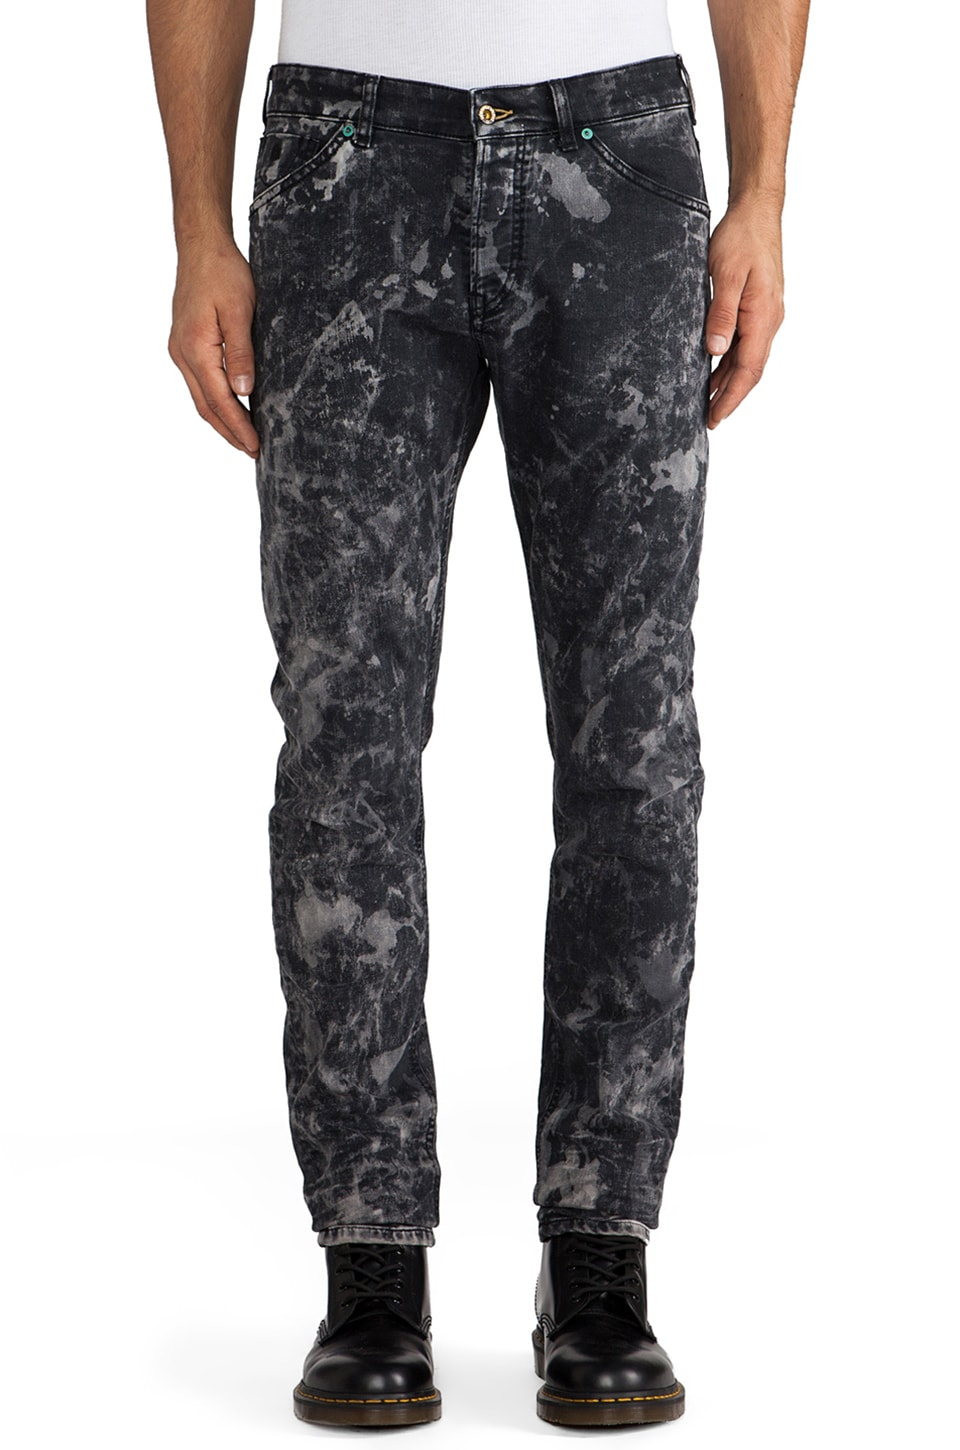 Scotch & Soda Gitane Super Slim Taper Jean in Black/Bleach